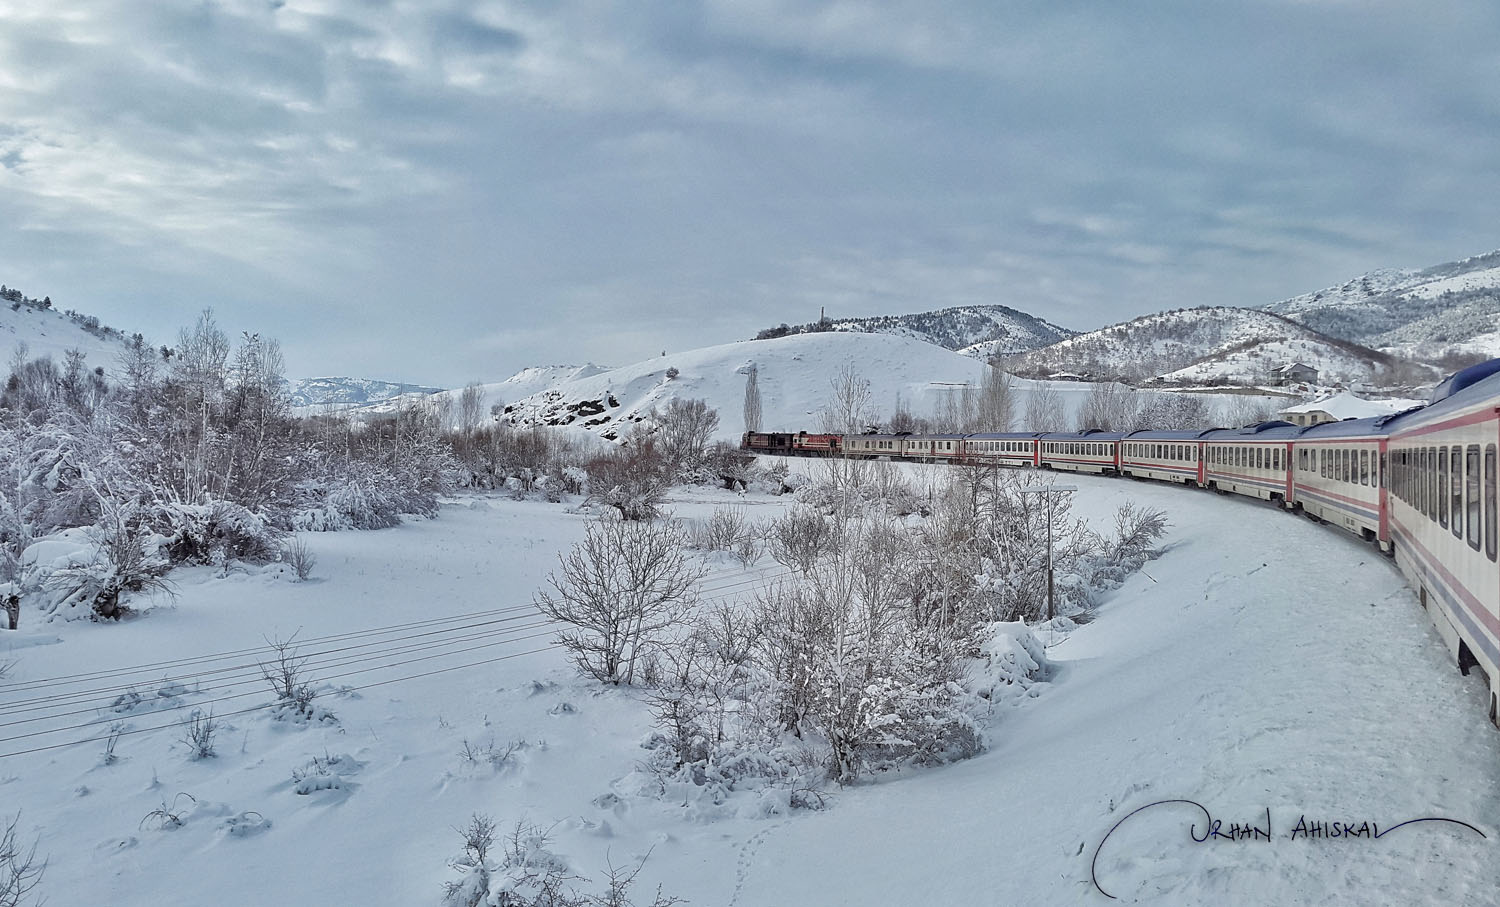 Winter scene in Elazığ province. Two diesel engines at work on ice. Photo: Orhan Ahıskal